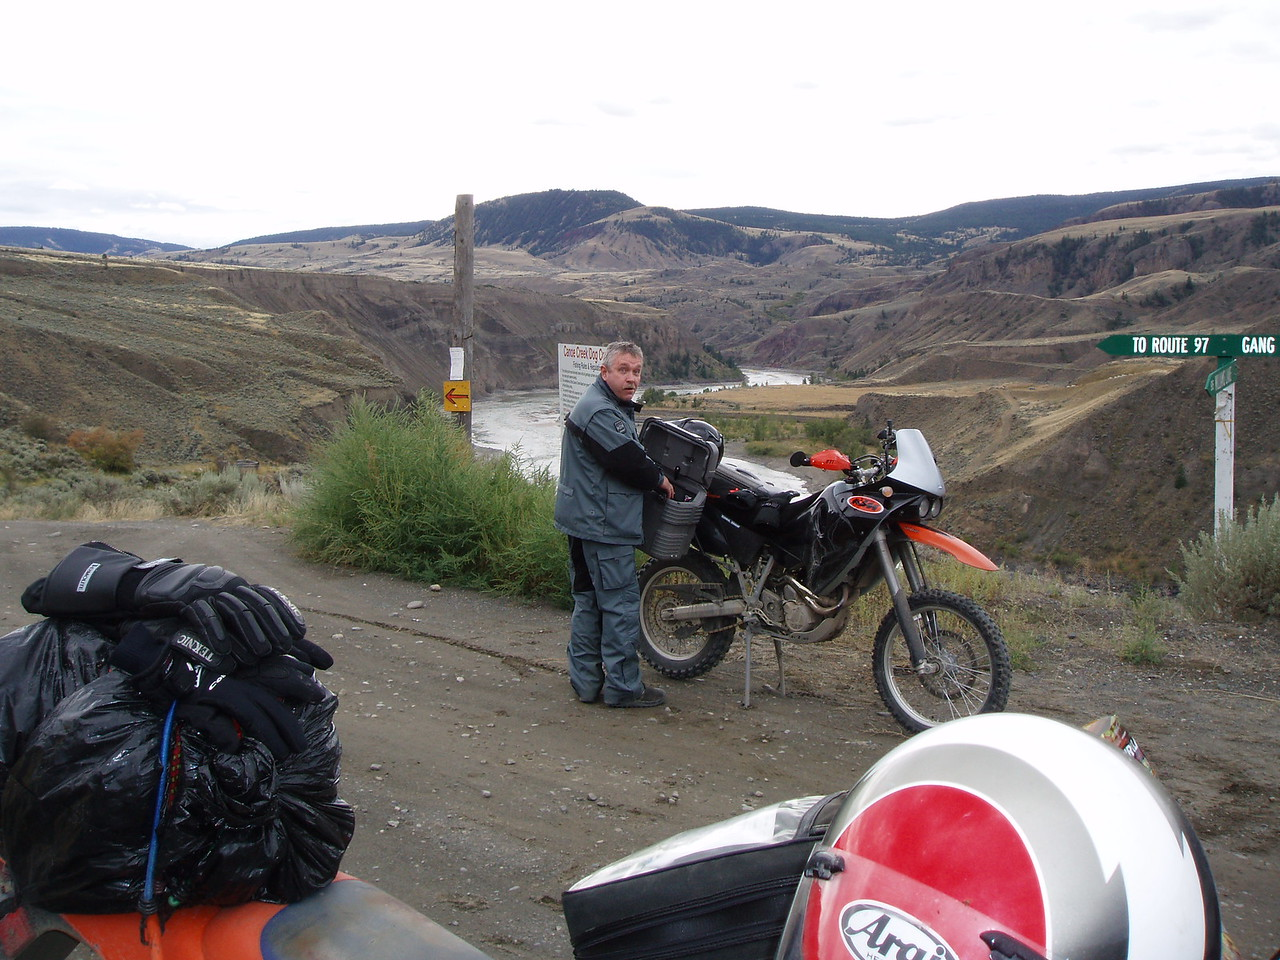 Near the Gang Ranch on our second day of riding. We had ridden in rain all morning making the ride miserable. The weather finally broke making for a great afternoon of riding.